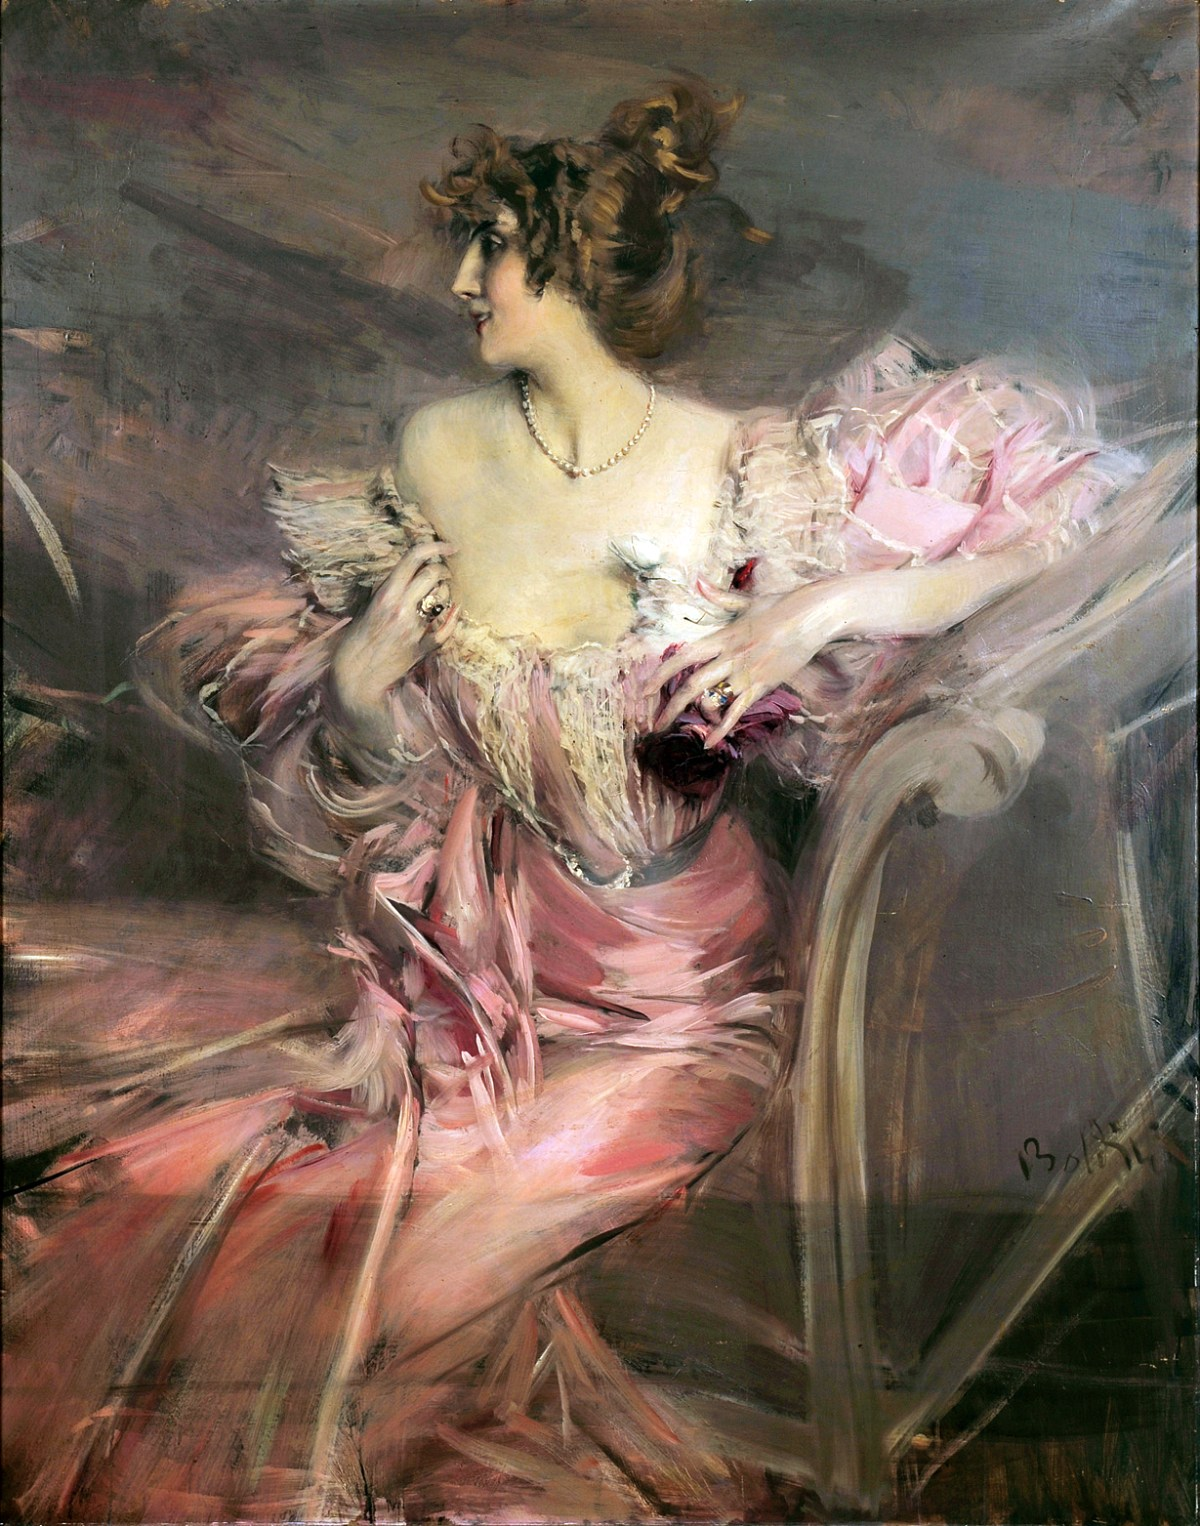 Lady in Pink Dress by Giovanni Boldini